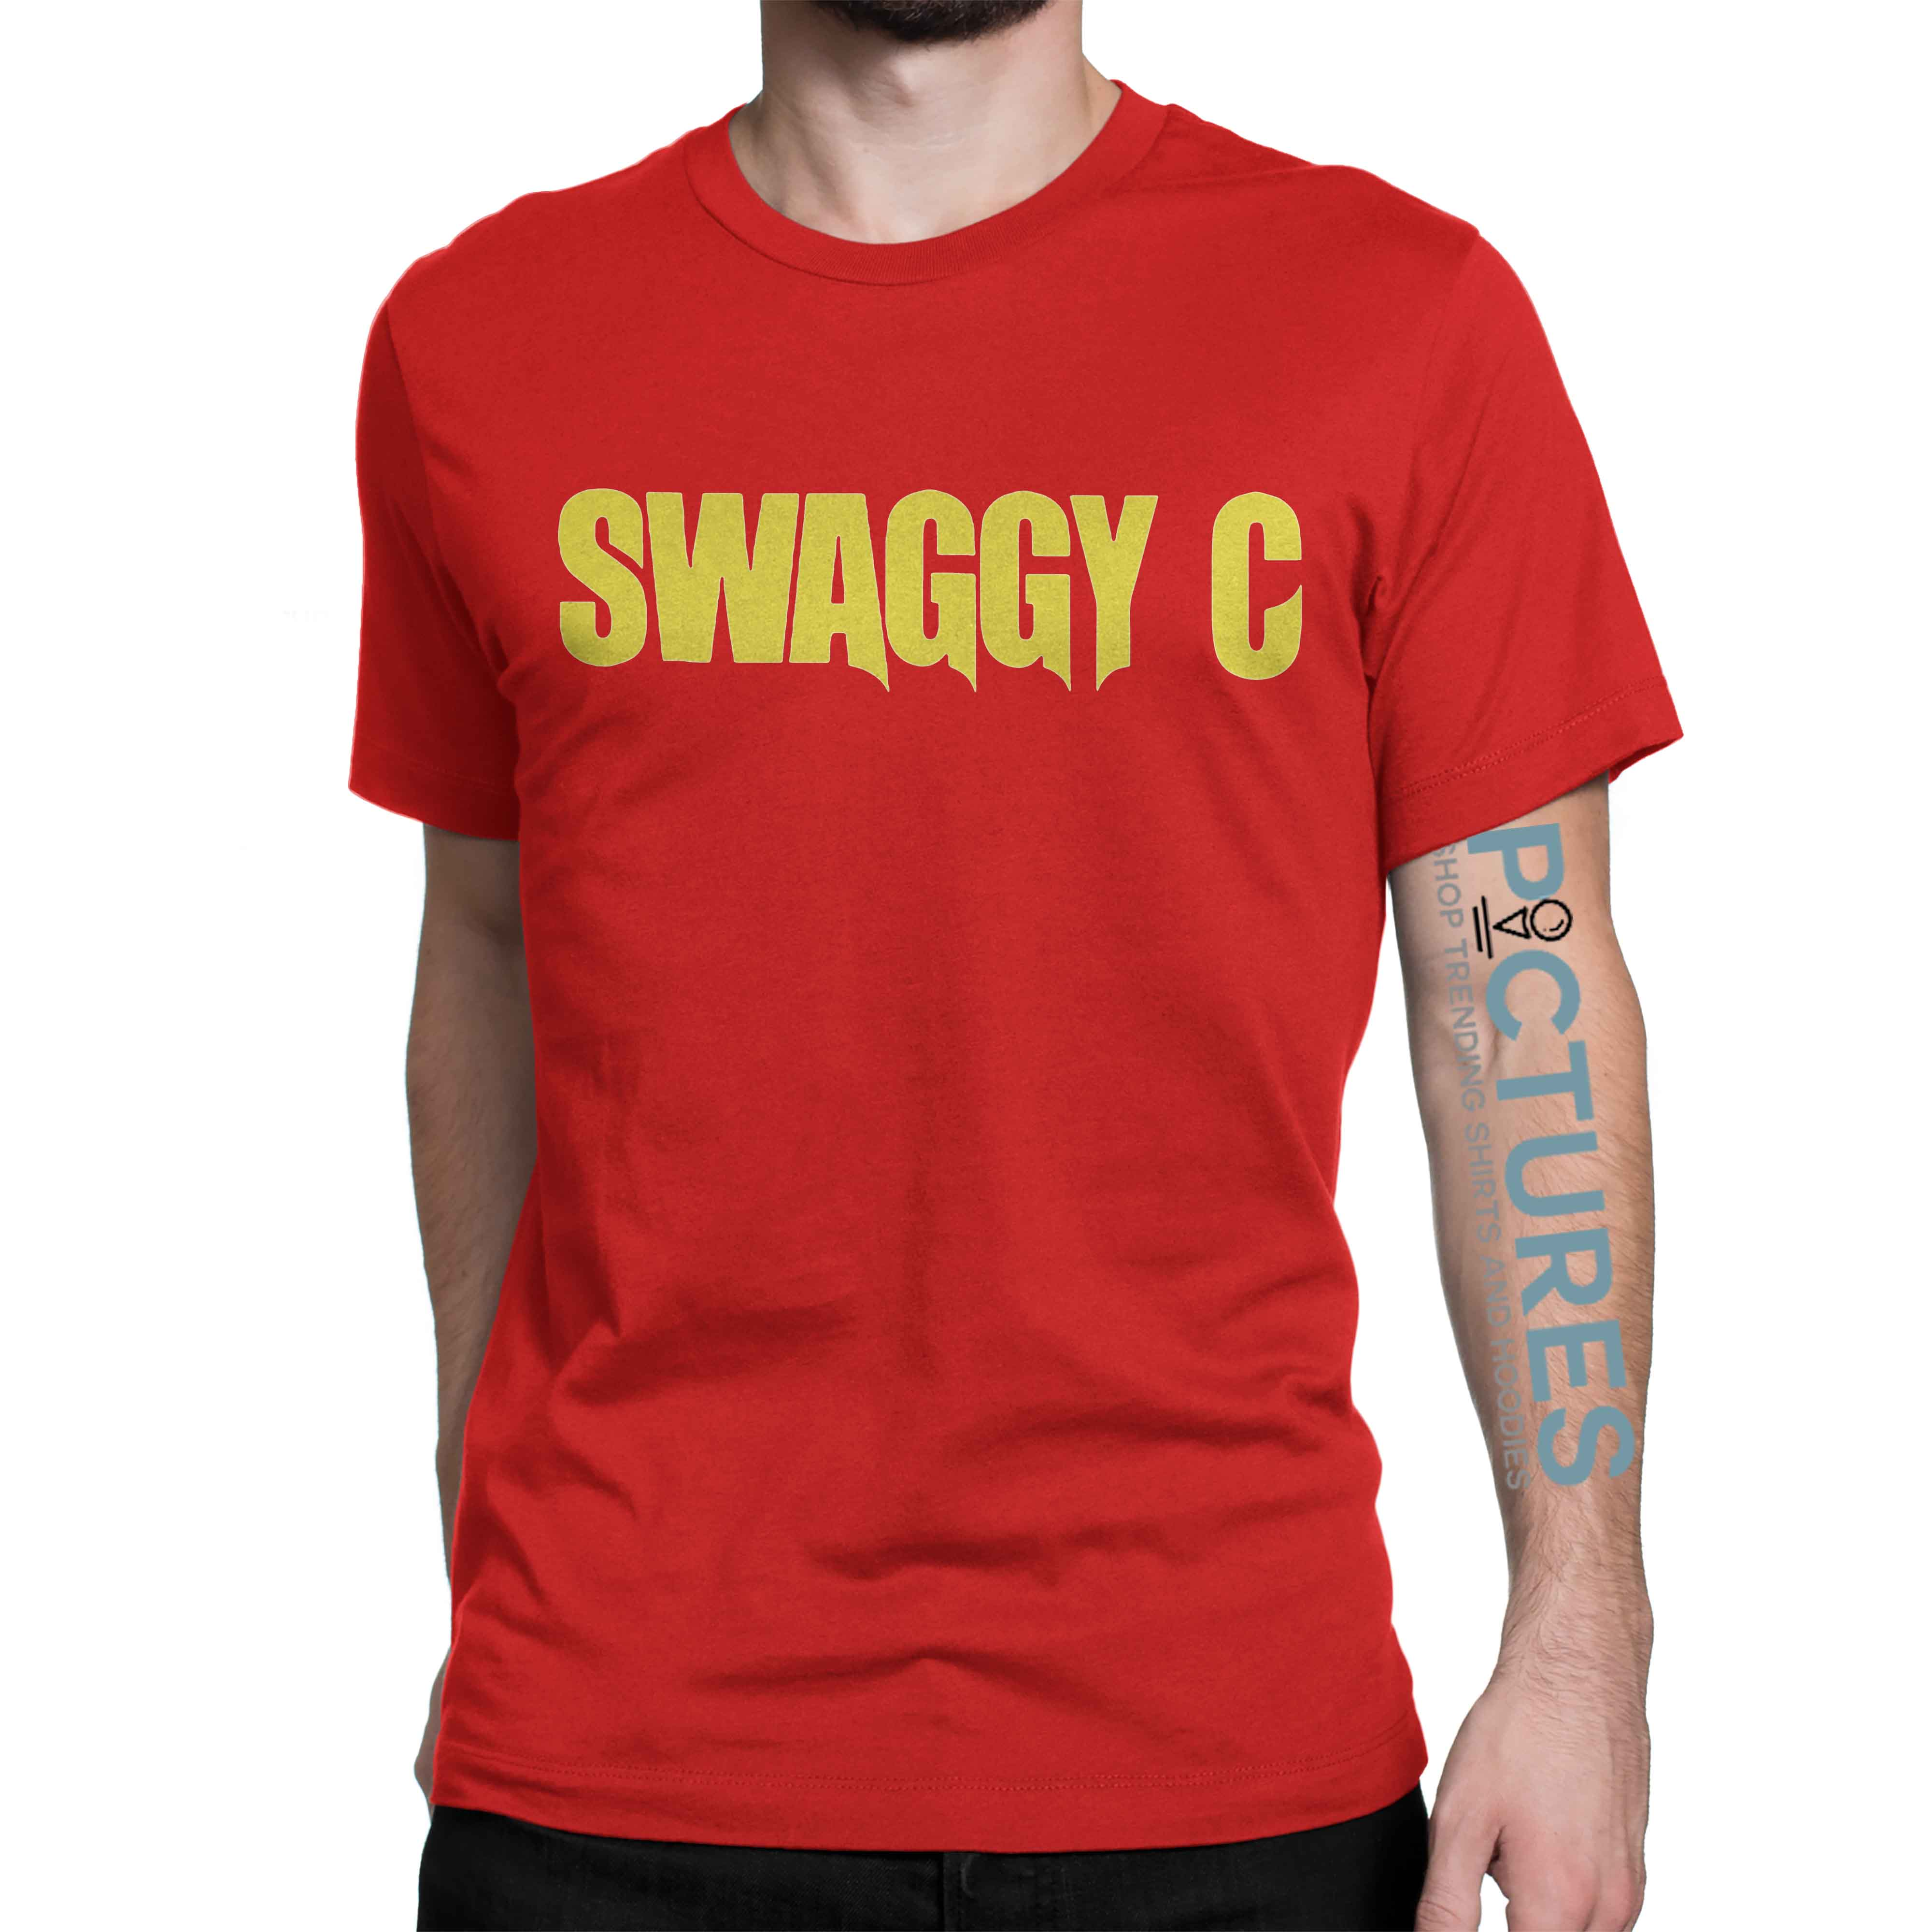 Swaggy C shirt